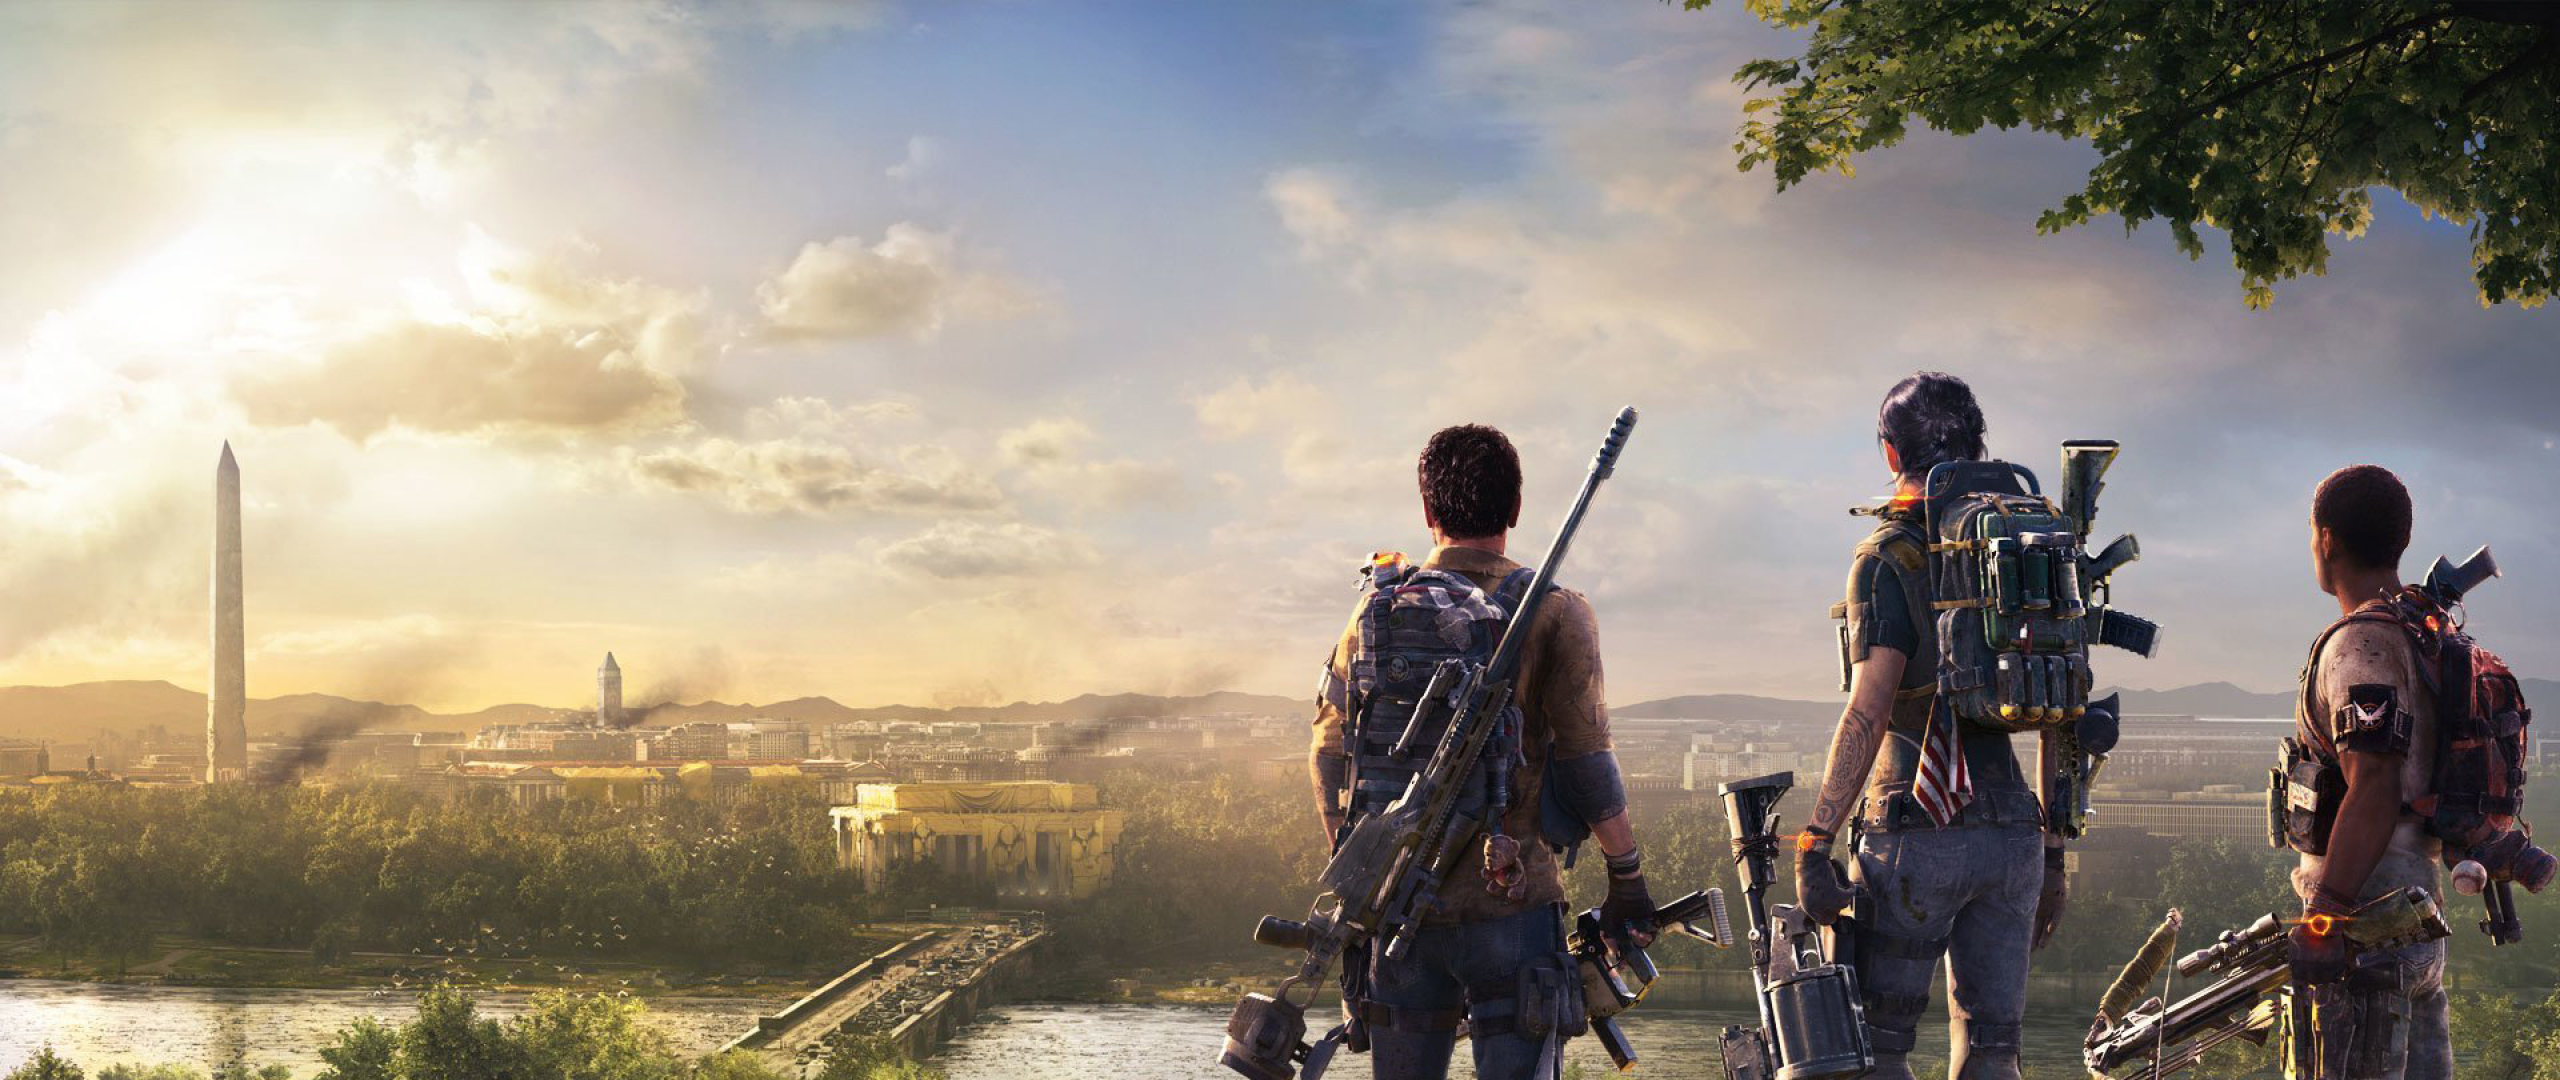 2560x1080 2019 The Division 2 Game 2560x1080 Resolution Wallpaper